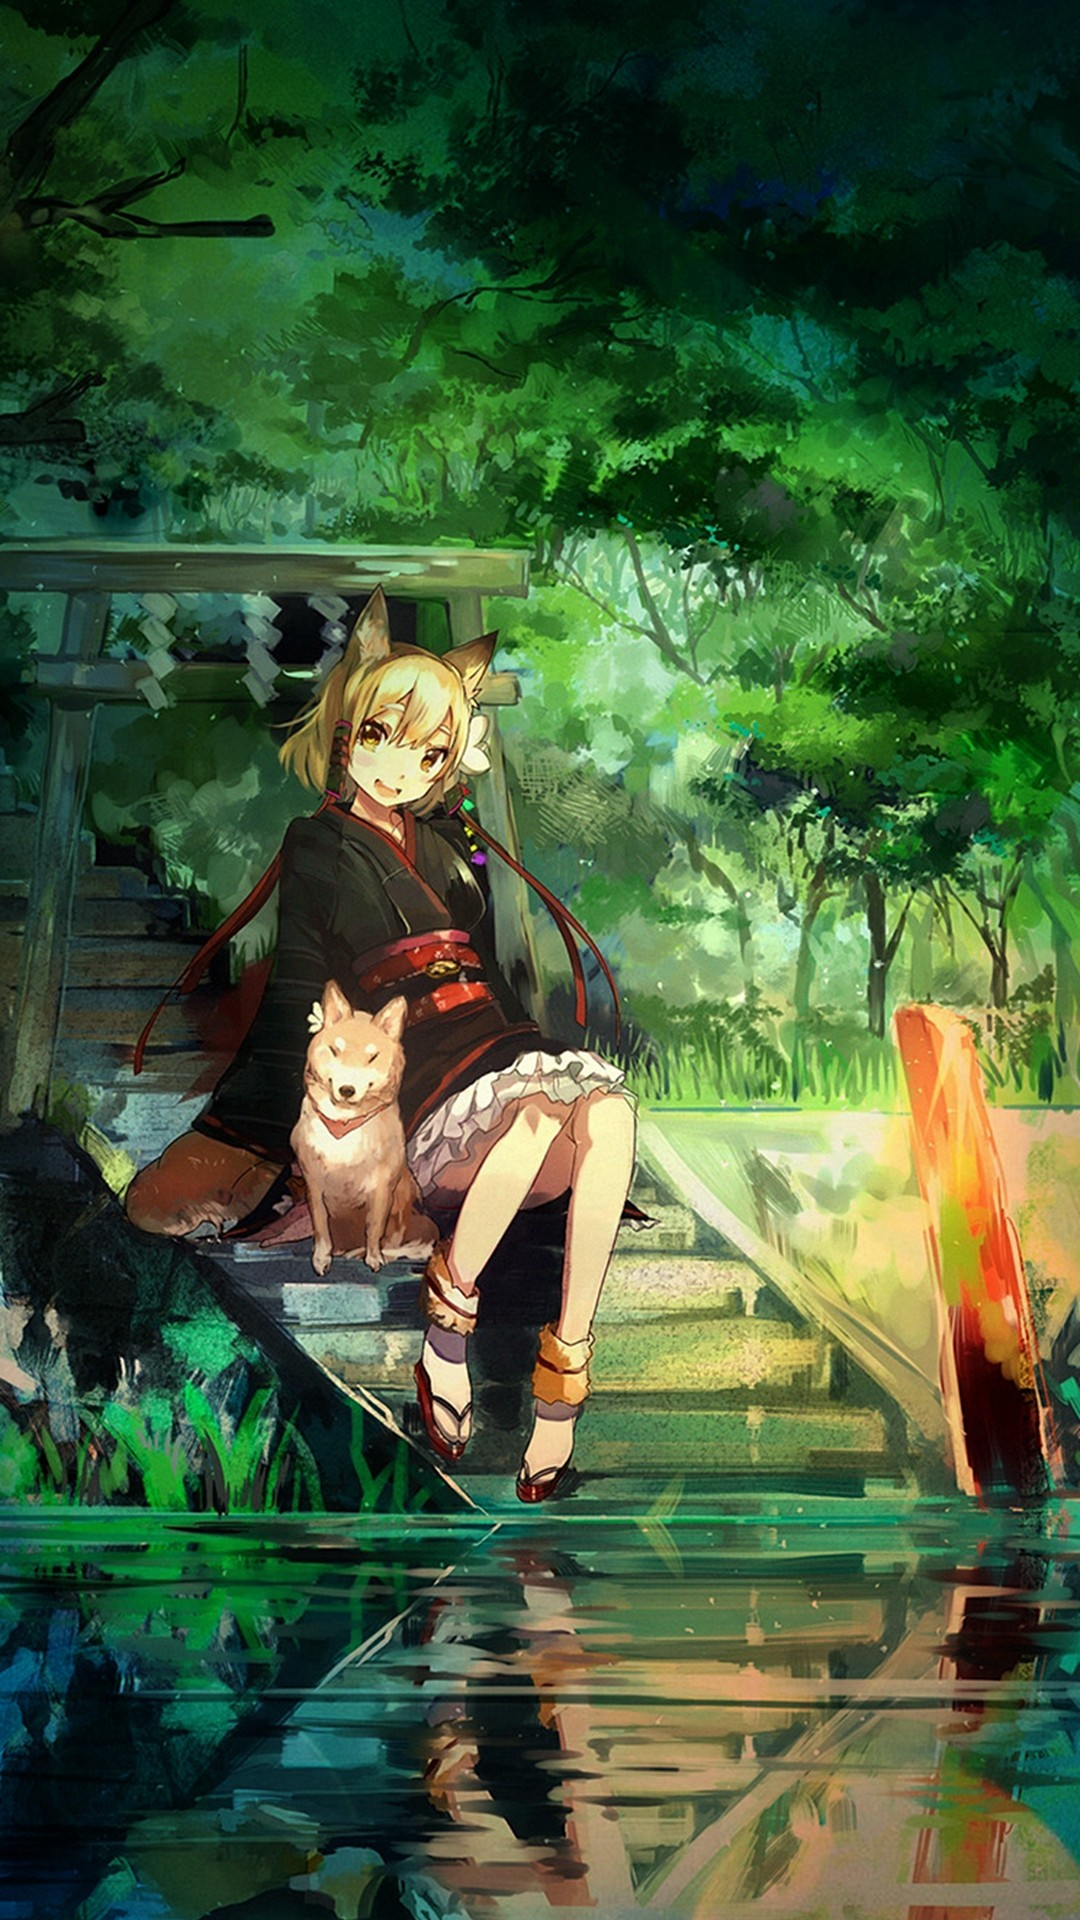 1080x1920 Girl And Dog Green Nature Anime Art Illust iPhone 6 plus wallpaper.